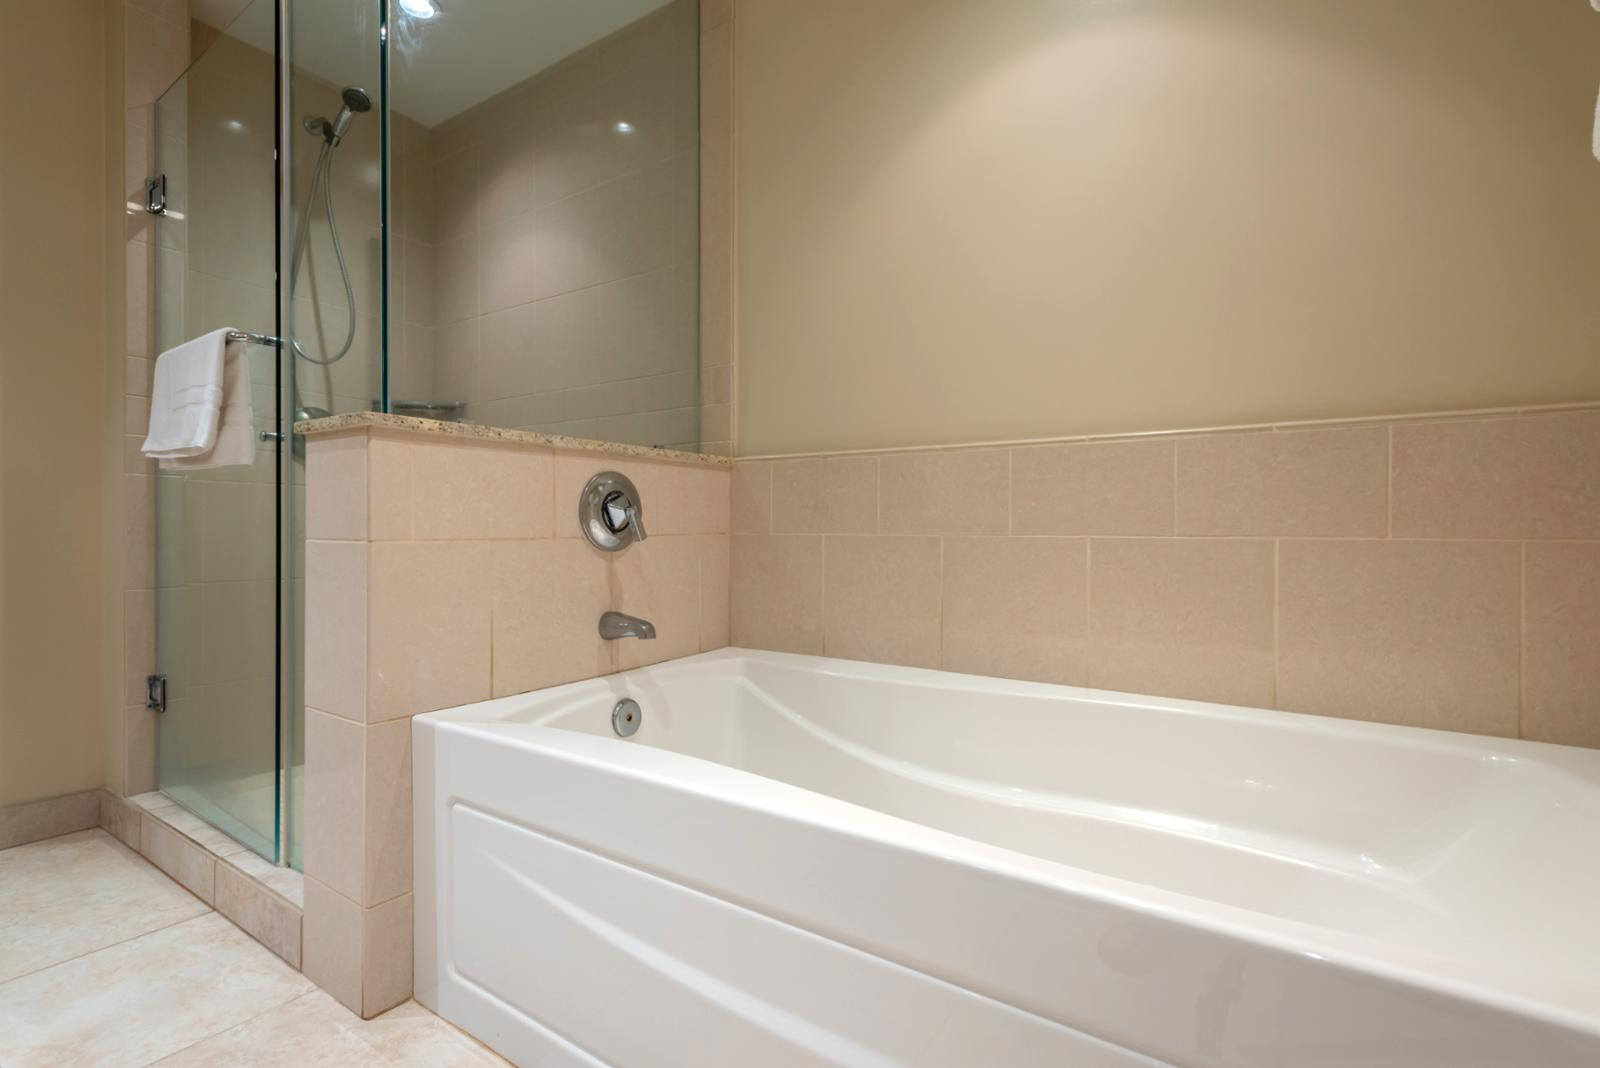 LARGE bathroom includes shower and tub combination